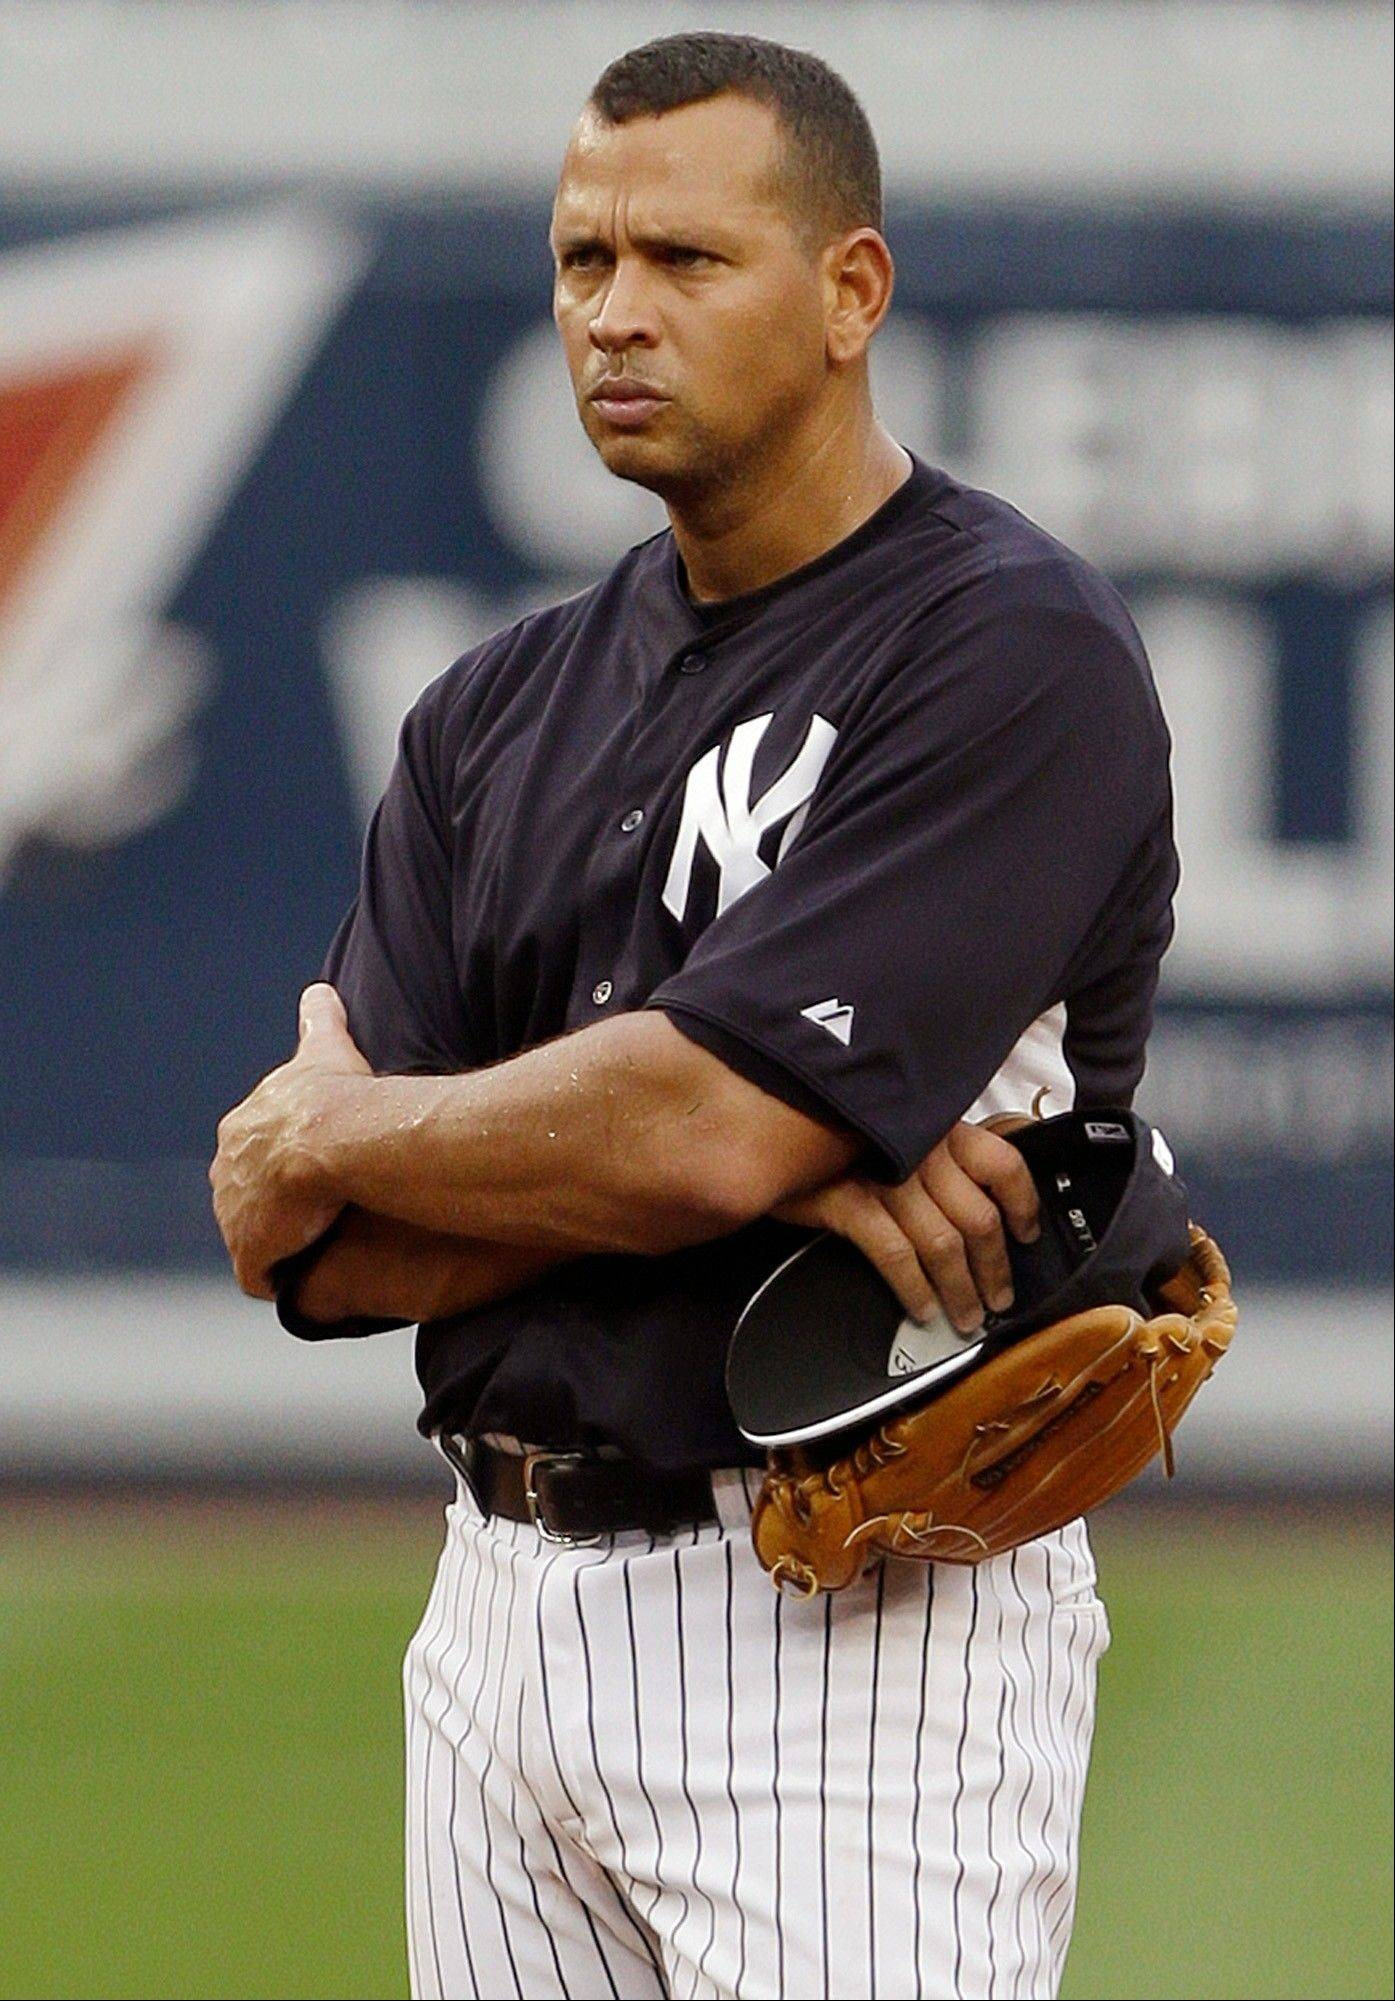 New York Yankees' Alex Rodriguez stands on the field during batting practice before a baseball game against the Detroit Tigers on Friday, Aug. 9, 2013, in New York. (AP Photo/Frank Franklin II)